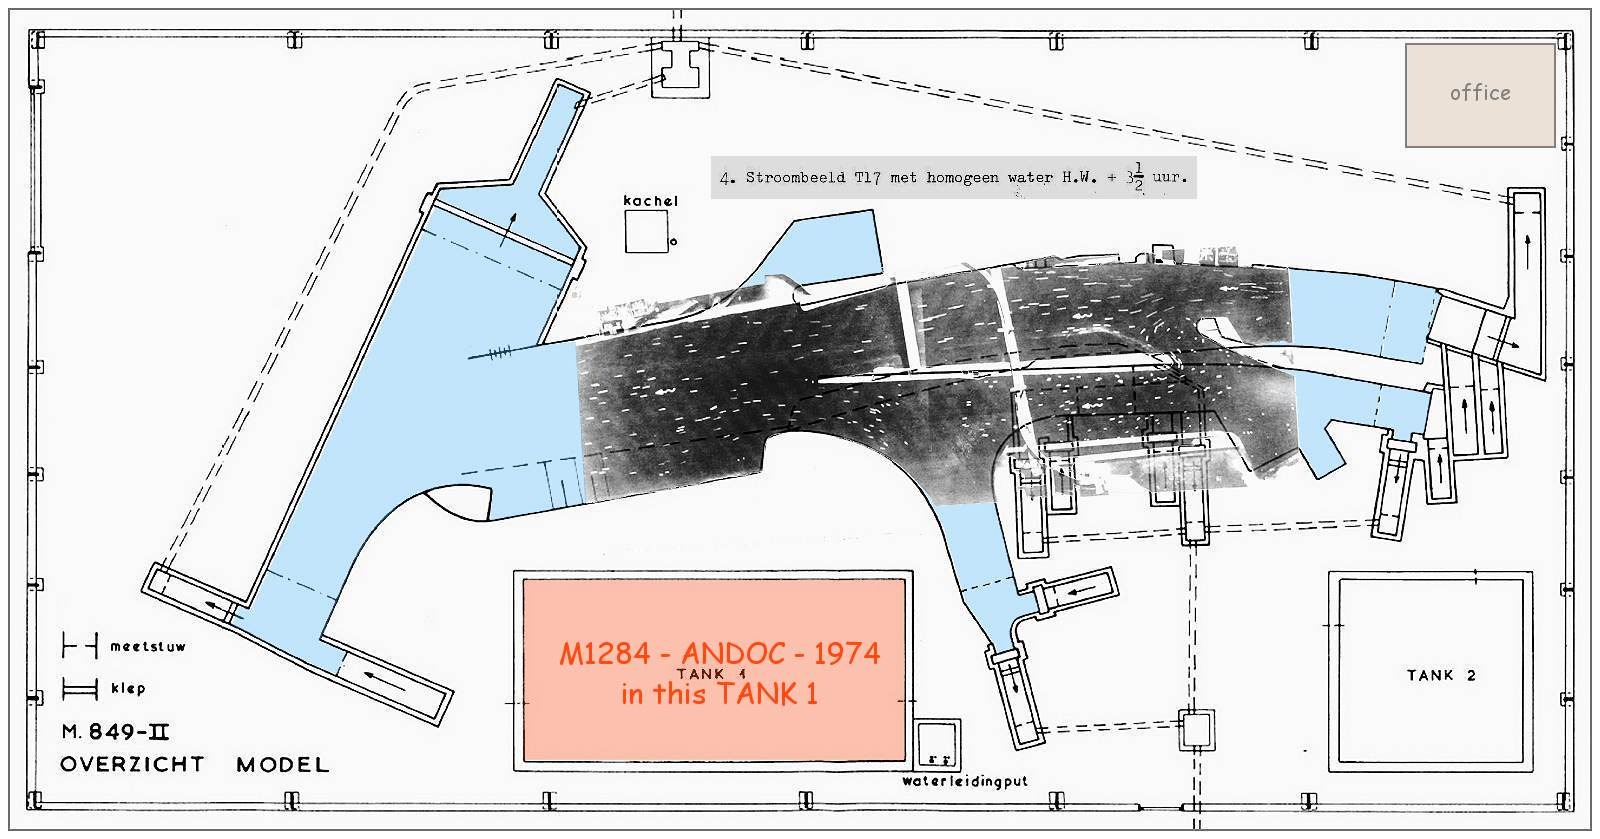 M 849 - Layout scale model with 'stroombeeld' T17 (current pattern T17) as overlay